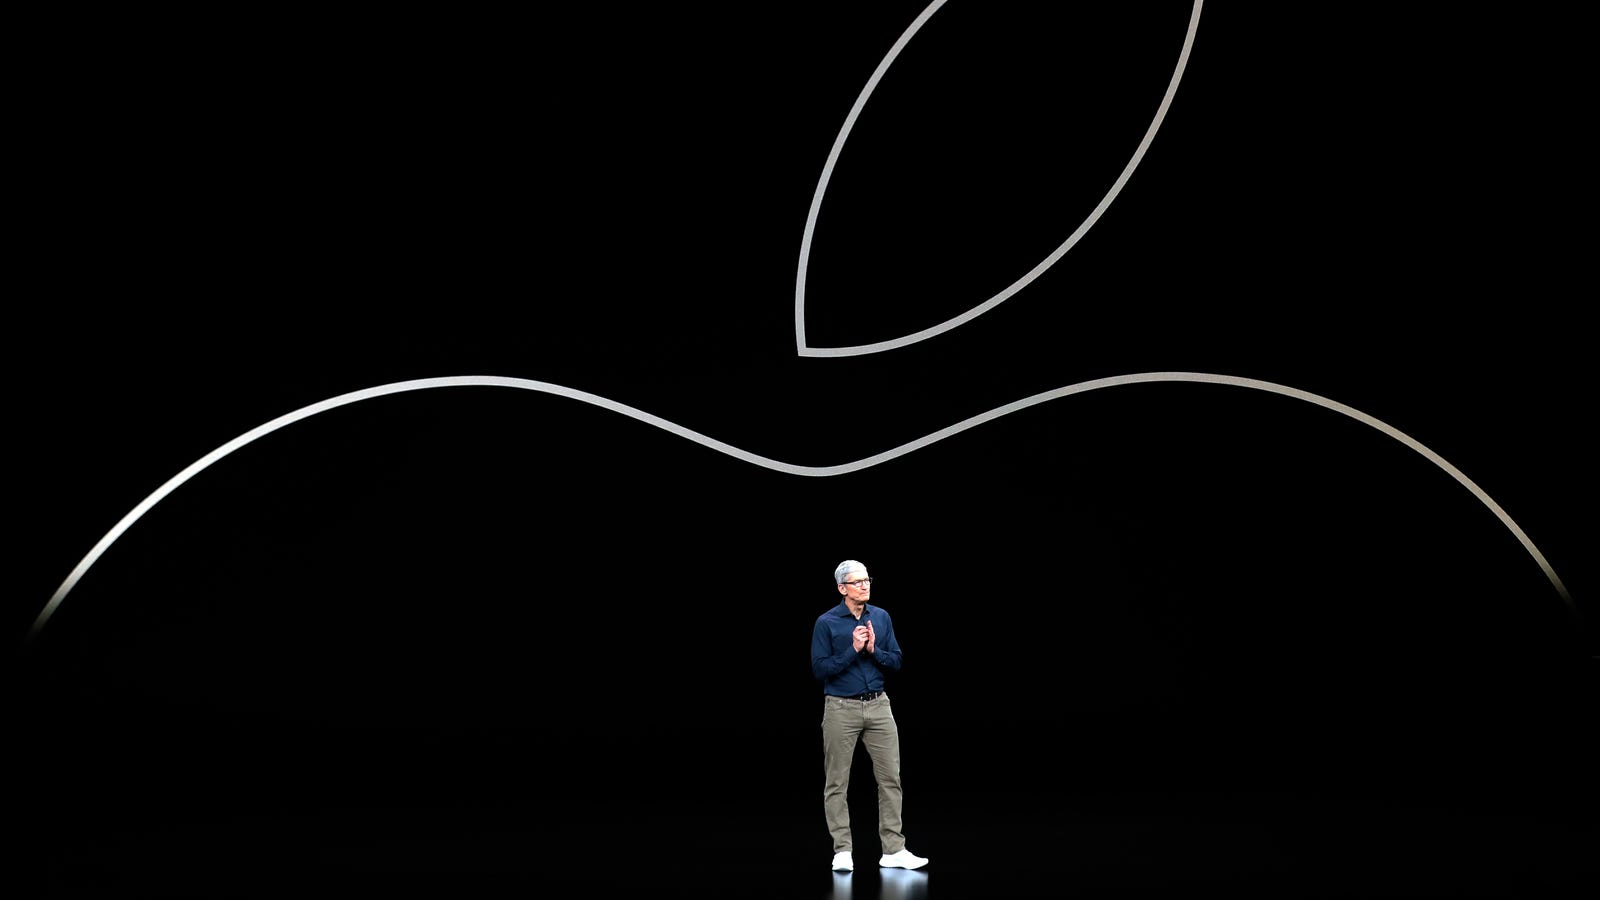 It Sounds Like It Could Be a While Until We Actually Get Apple's Streaming Service